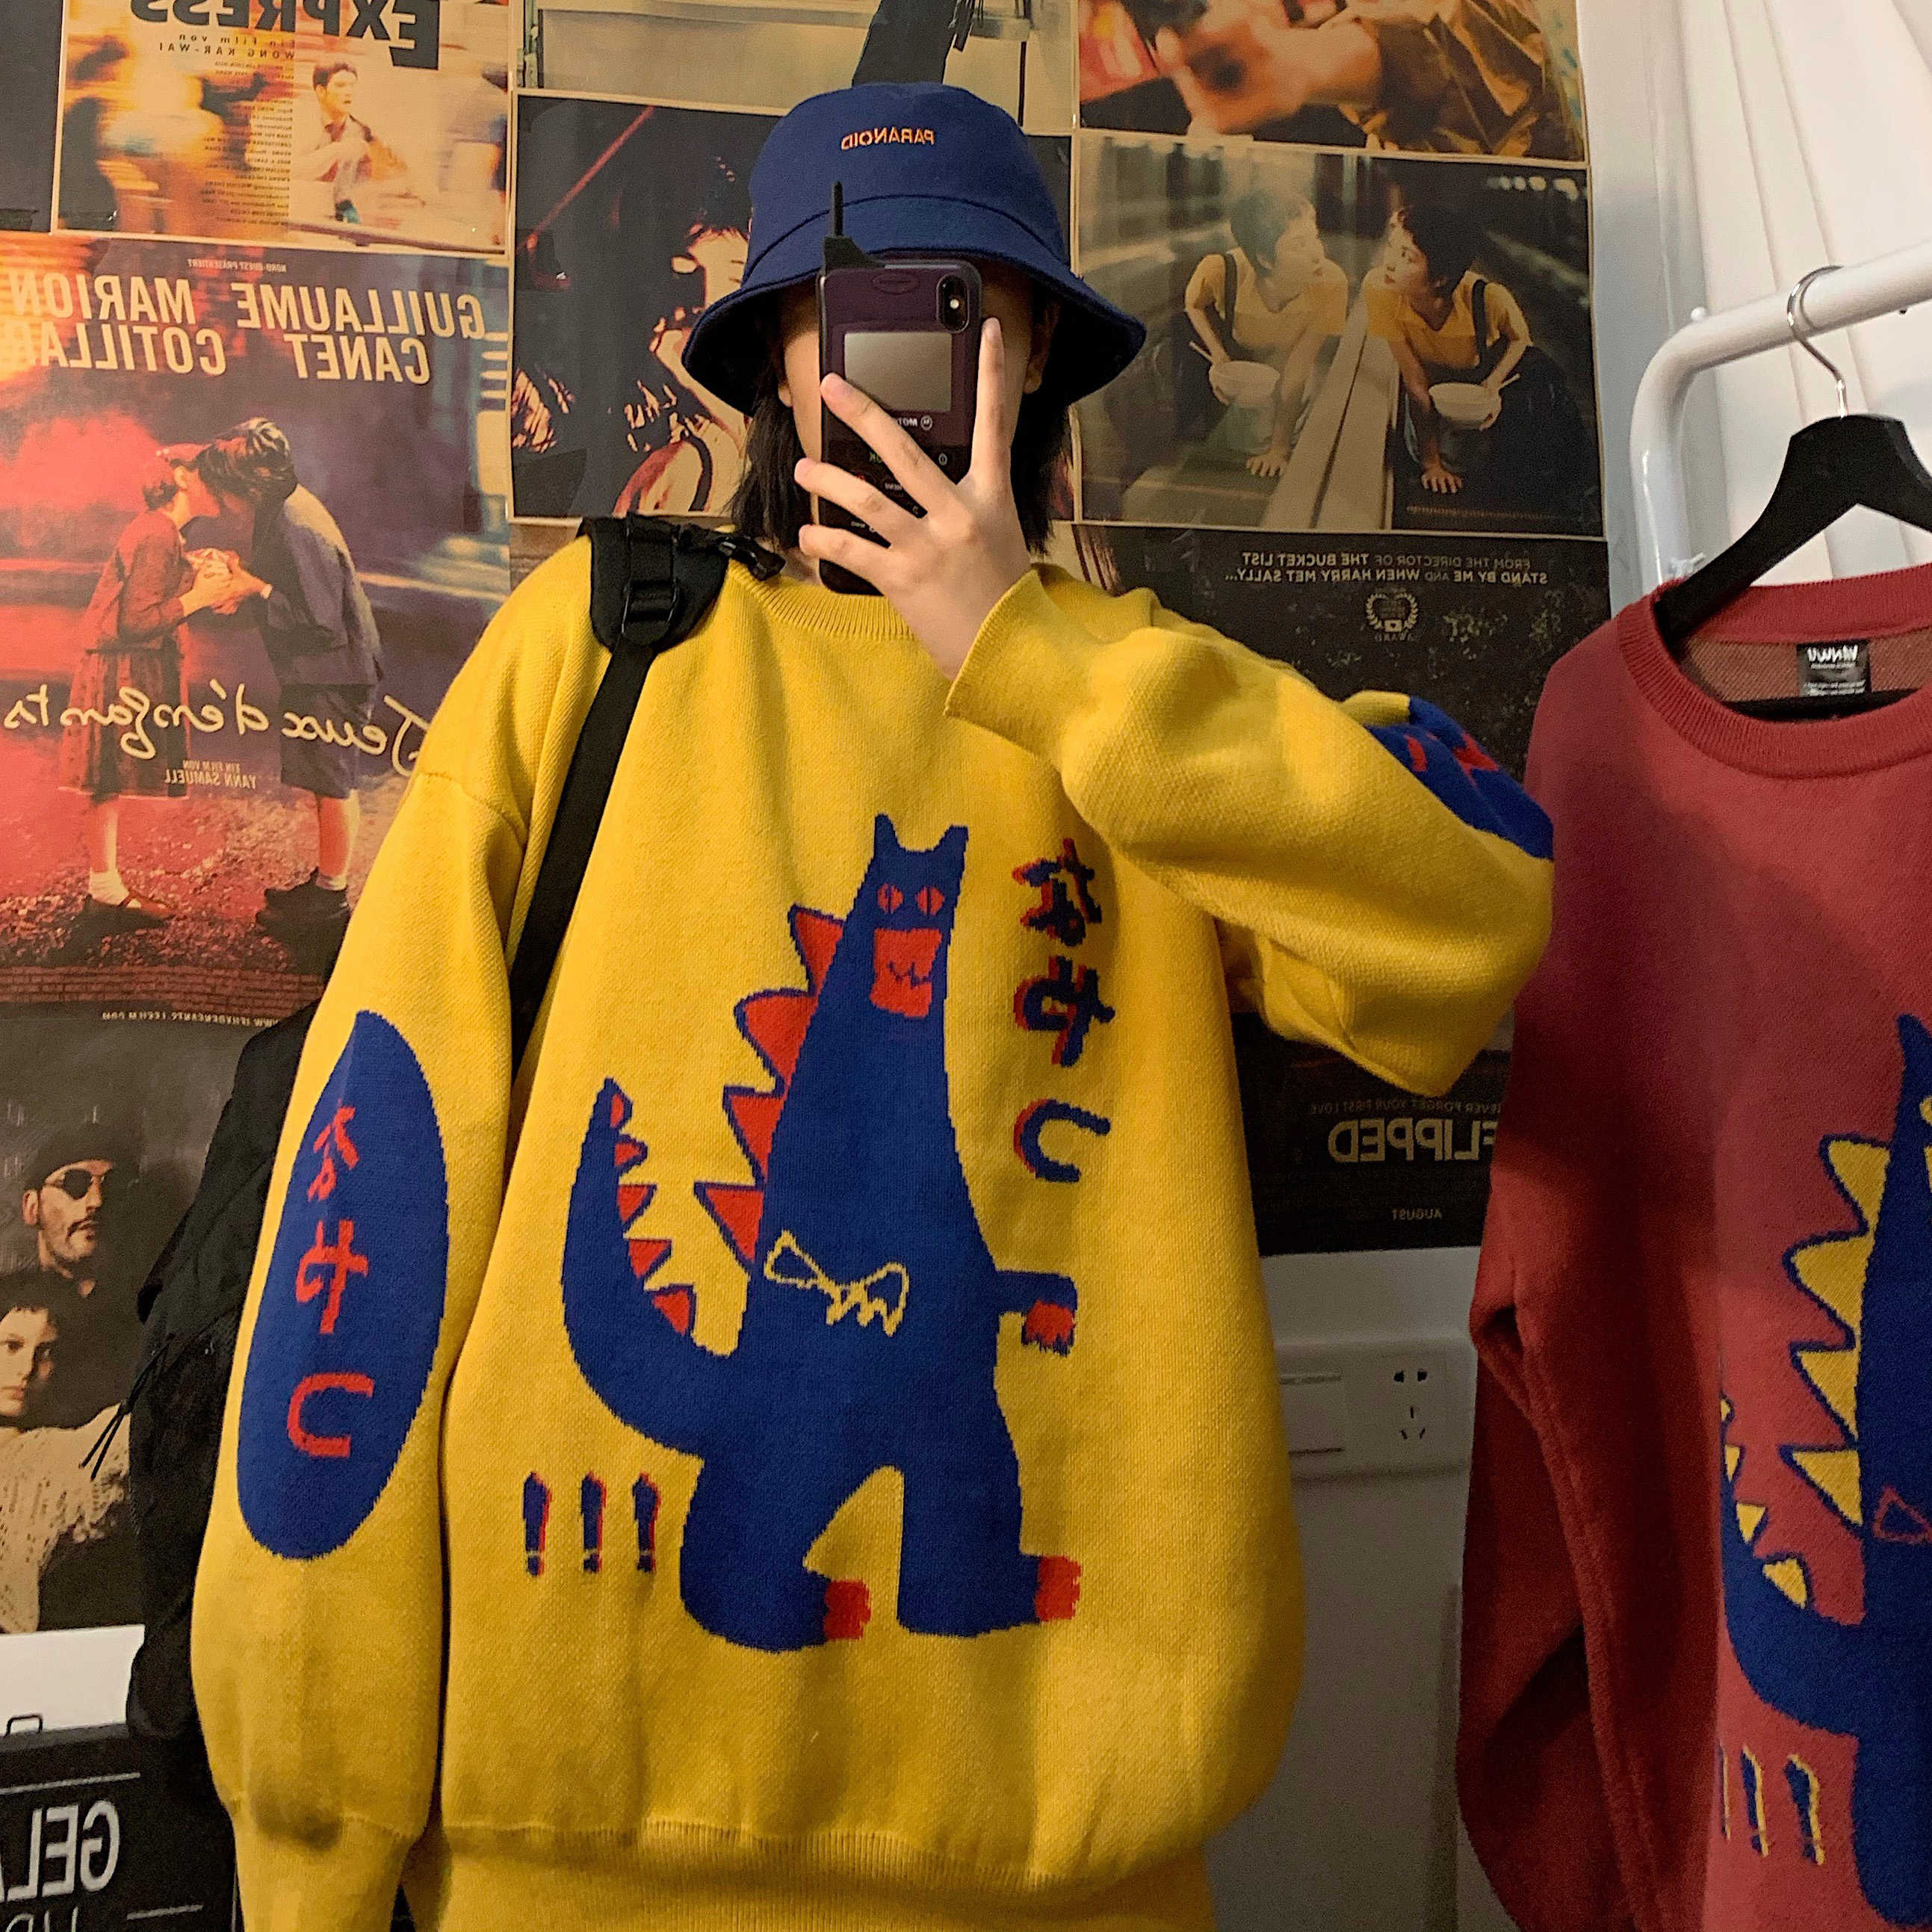 2019 Winter Men's Cartoon Embroidery Coats Cashmere Knitting Red/yellow Pullover Casual Keep Warm Loose Woolen Sweaters M-2XL